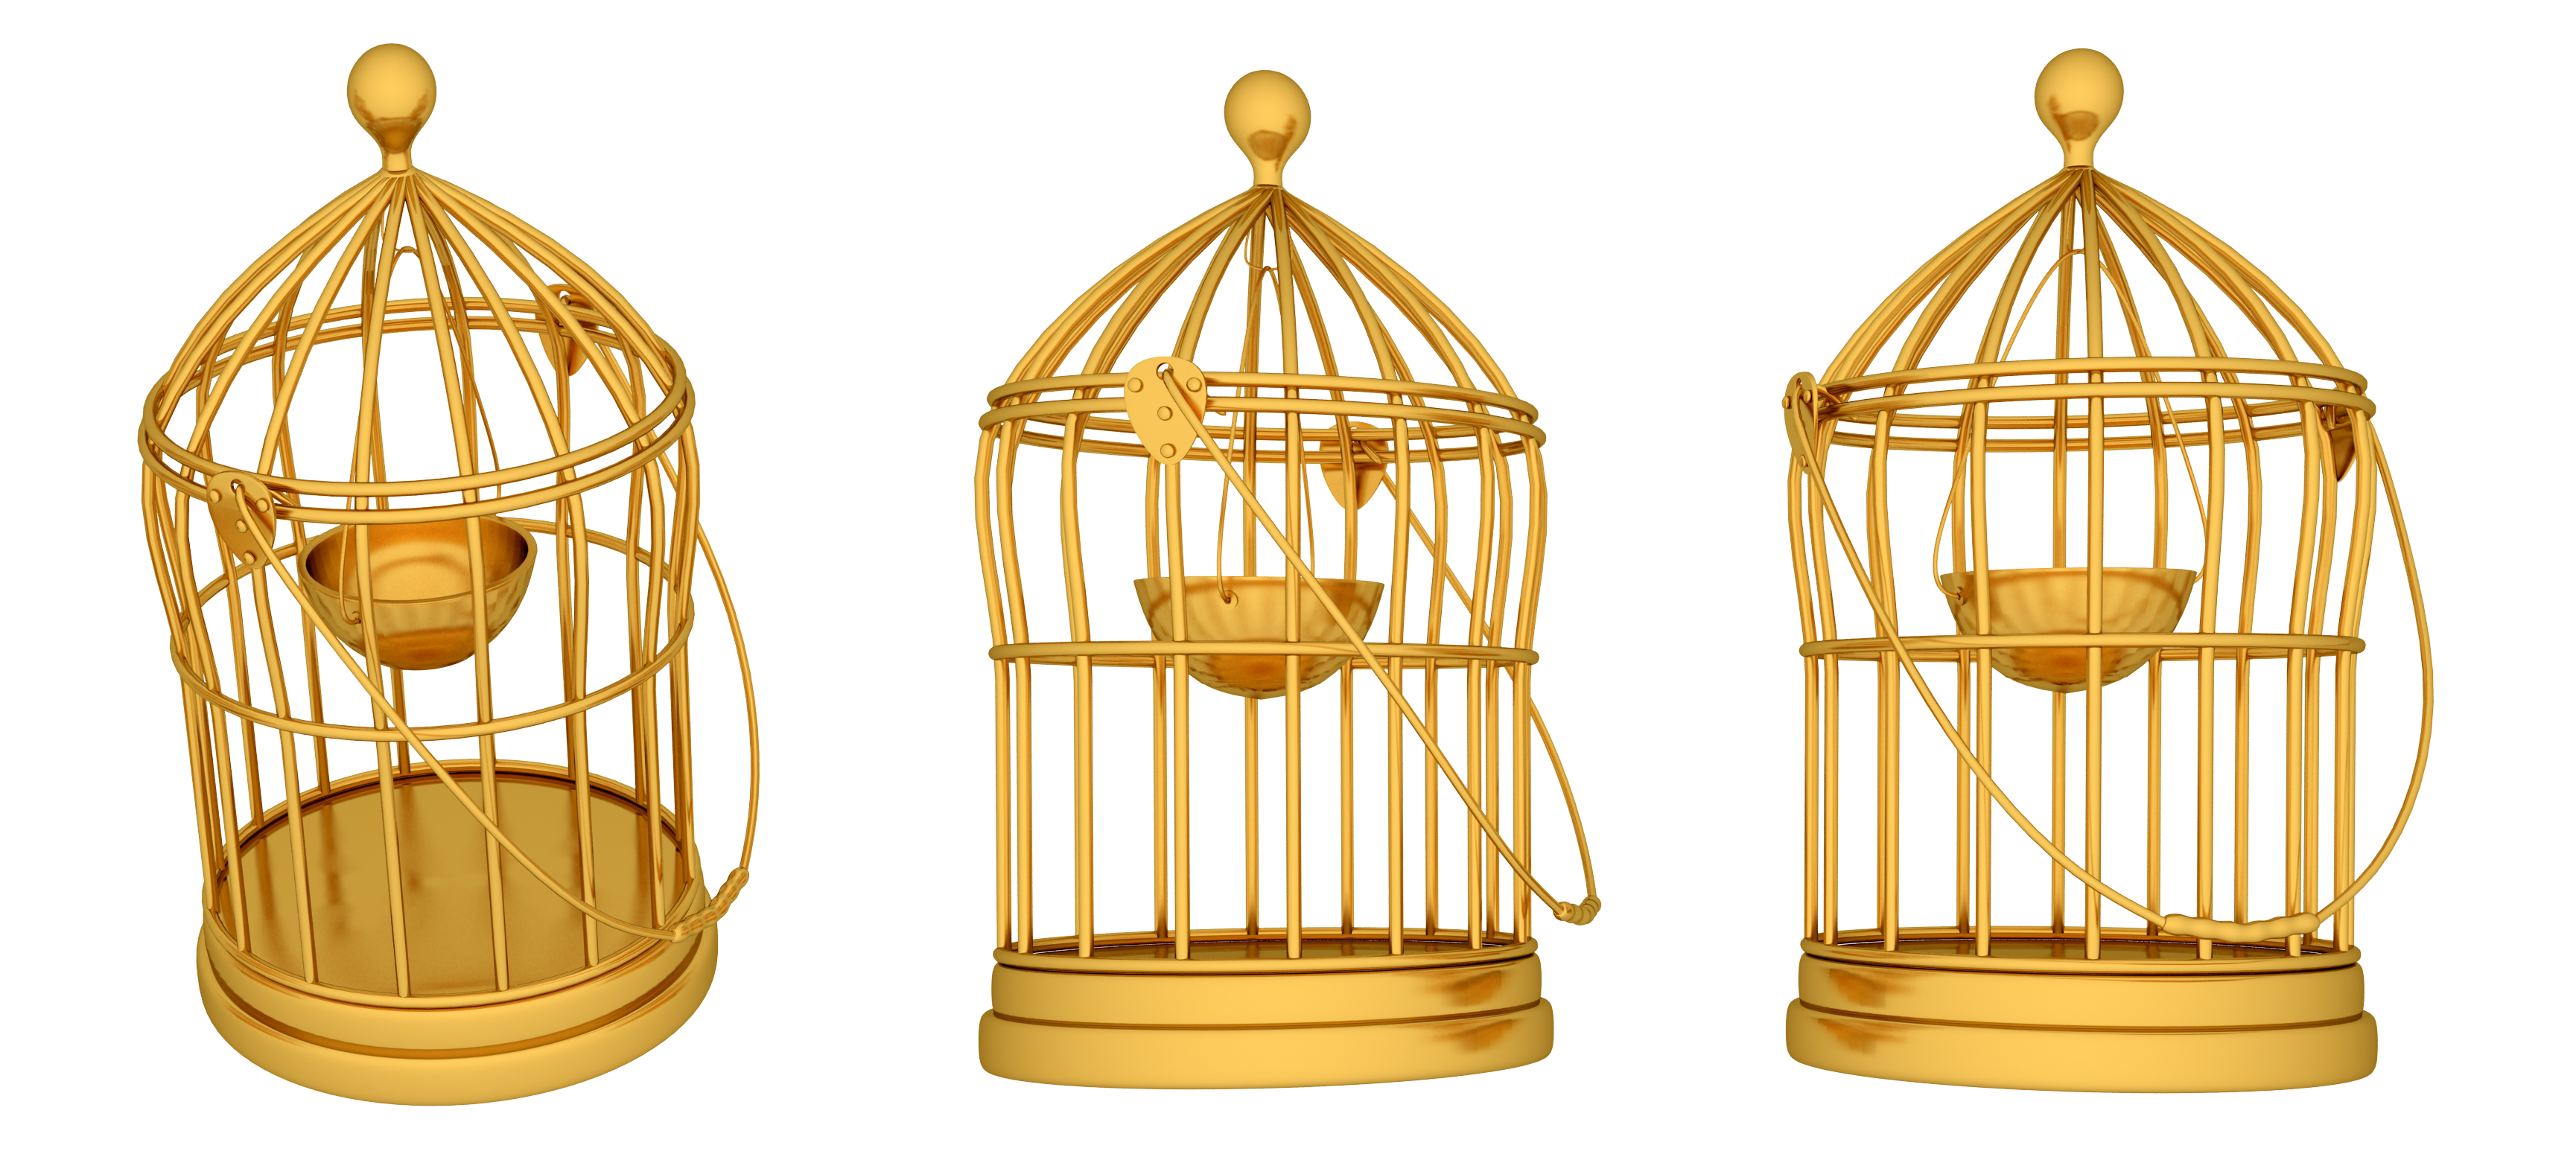 golden birds cages psd and picture